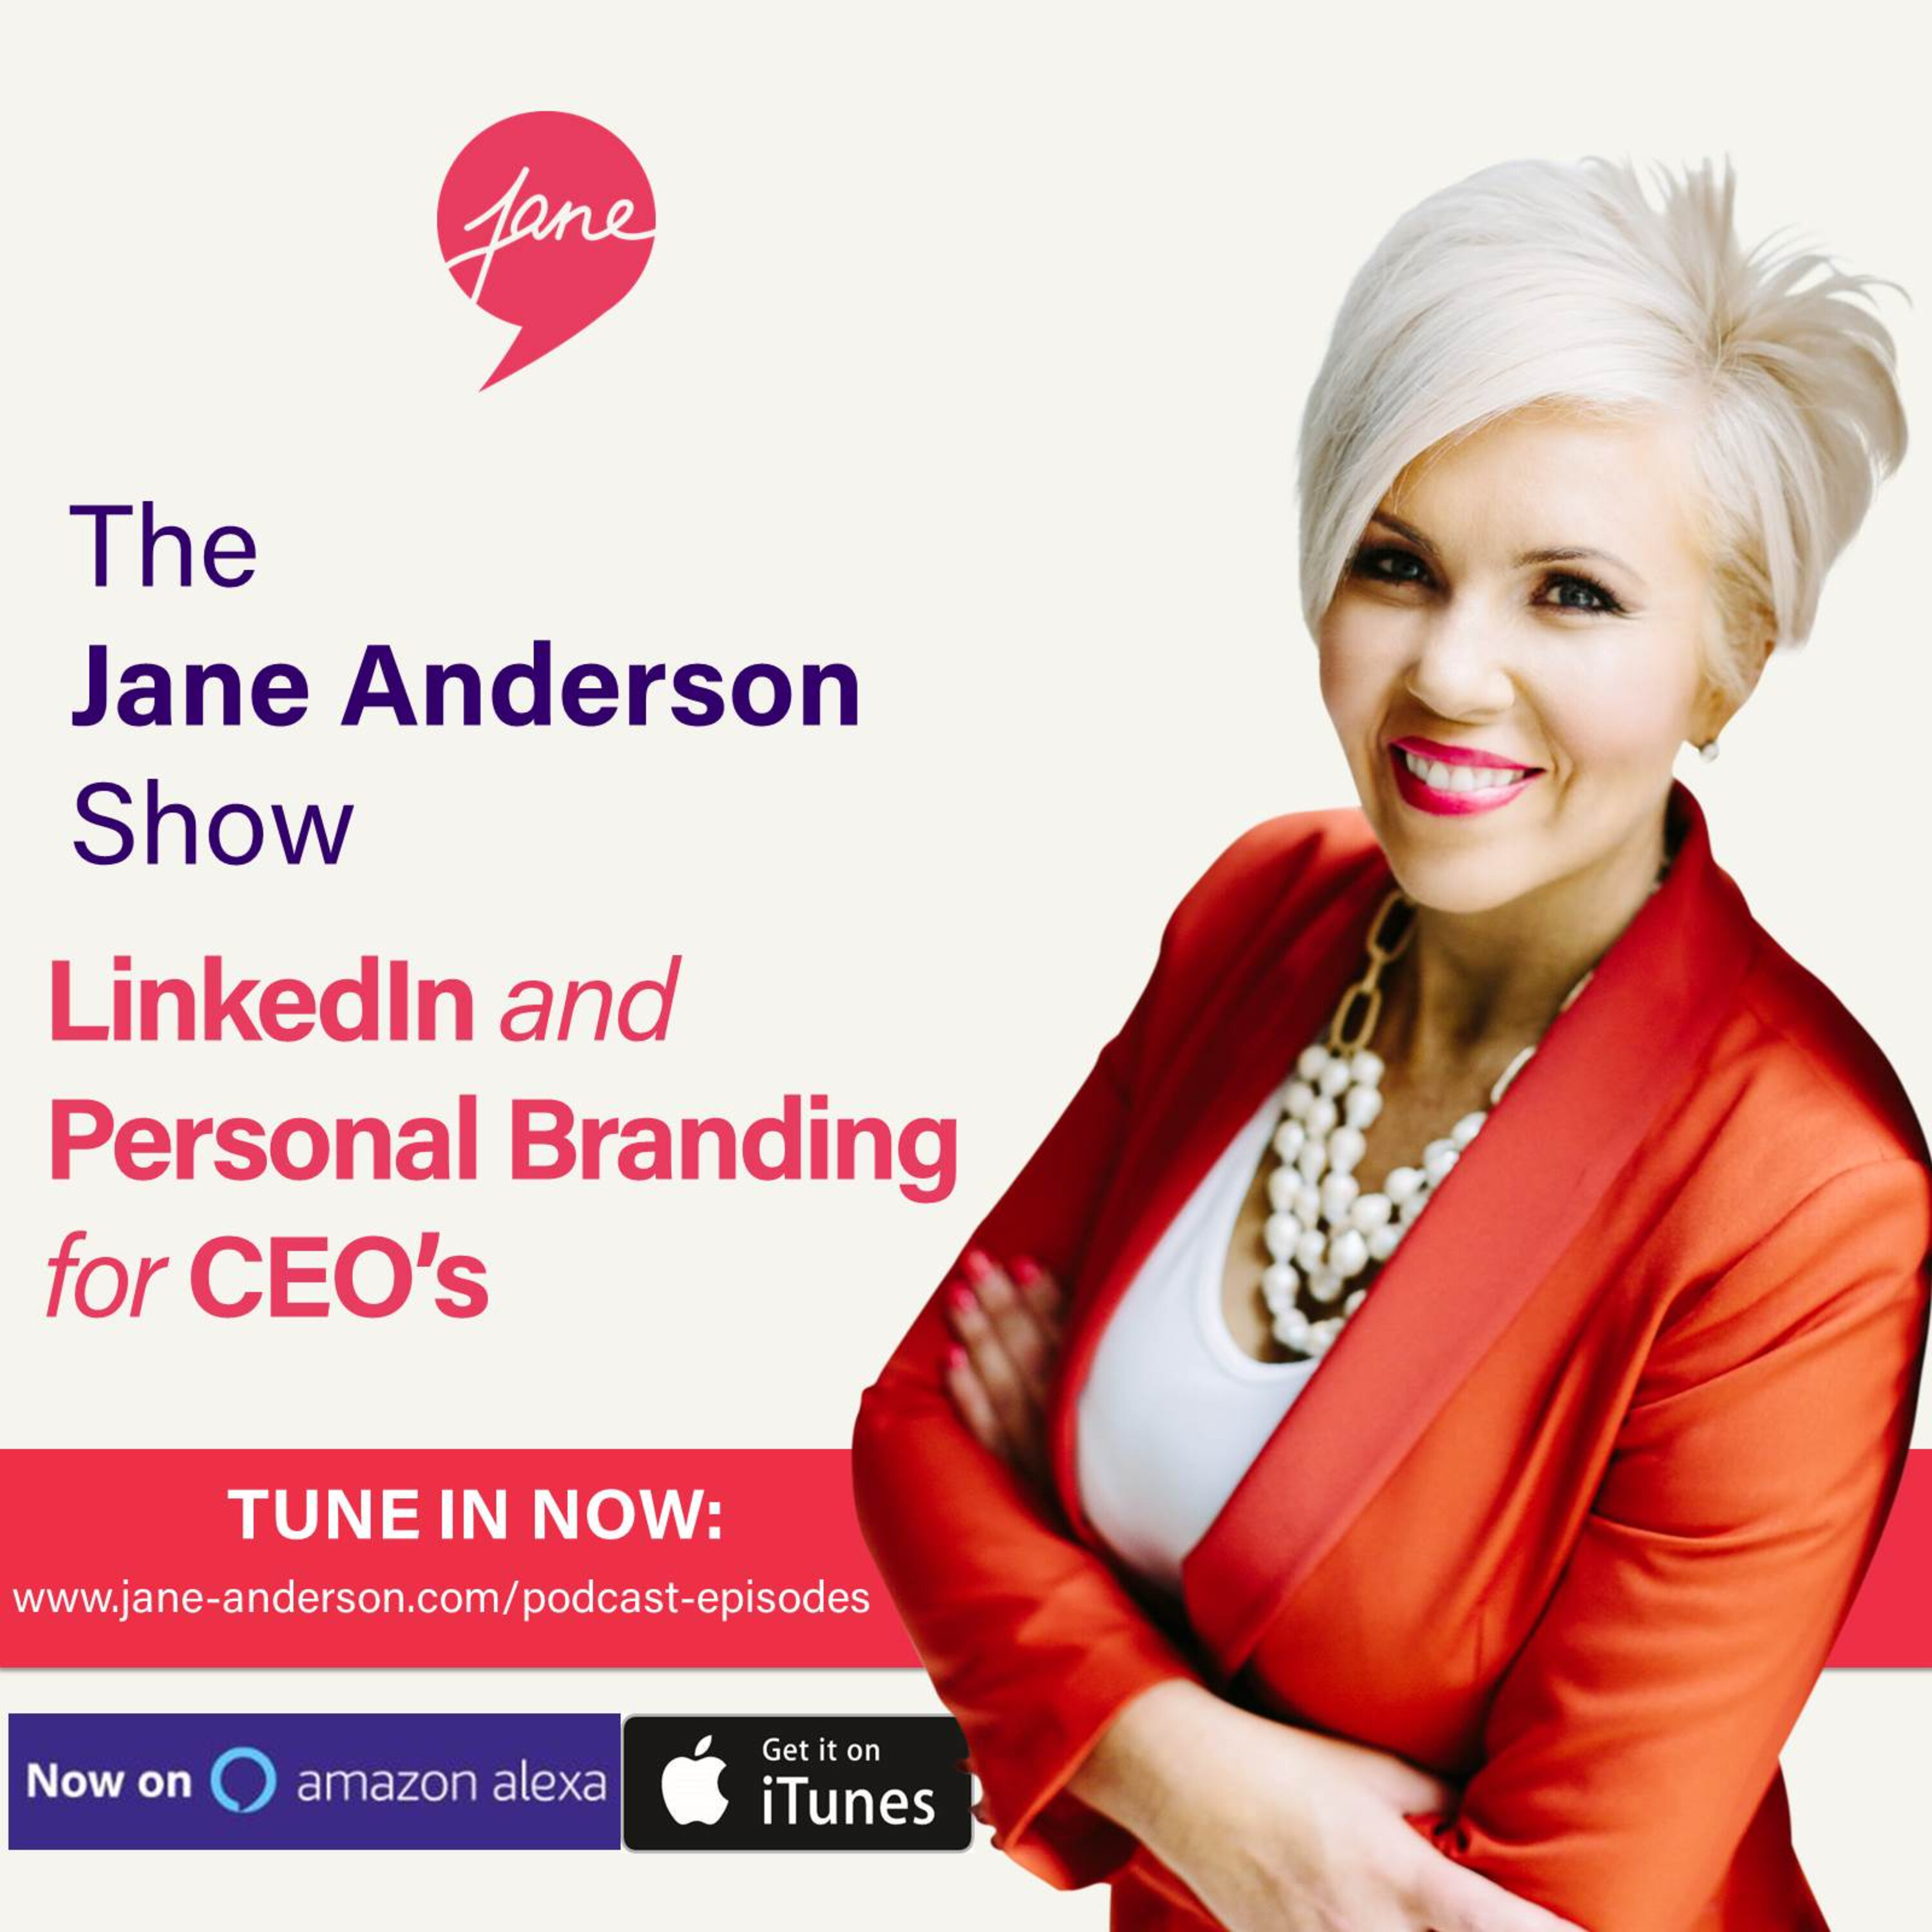 Episode 21 - LinkedIn and Personal Branding for CEO's